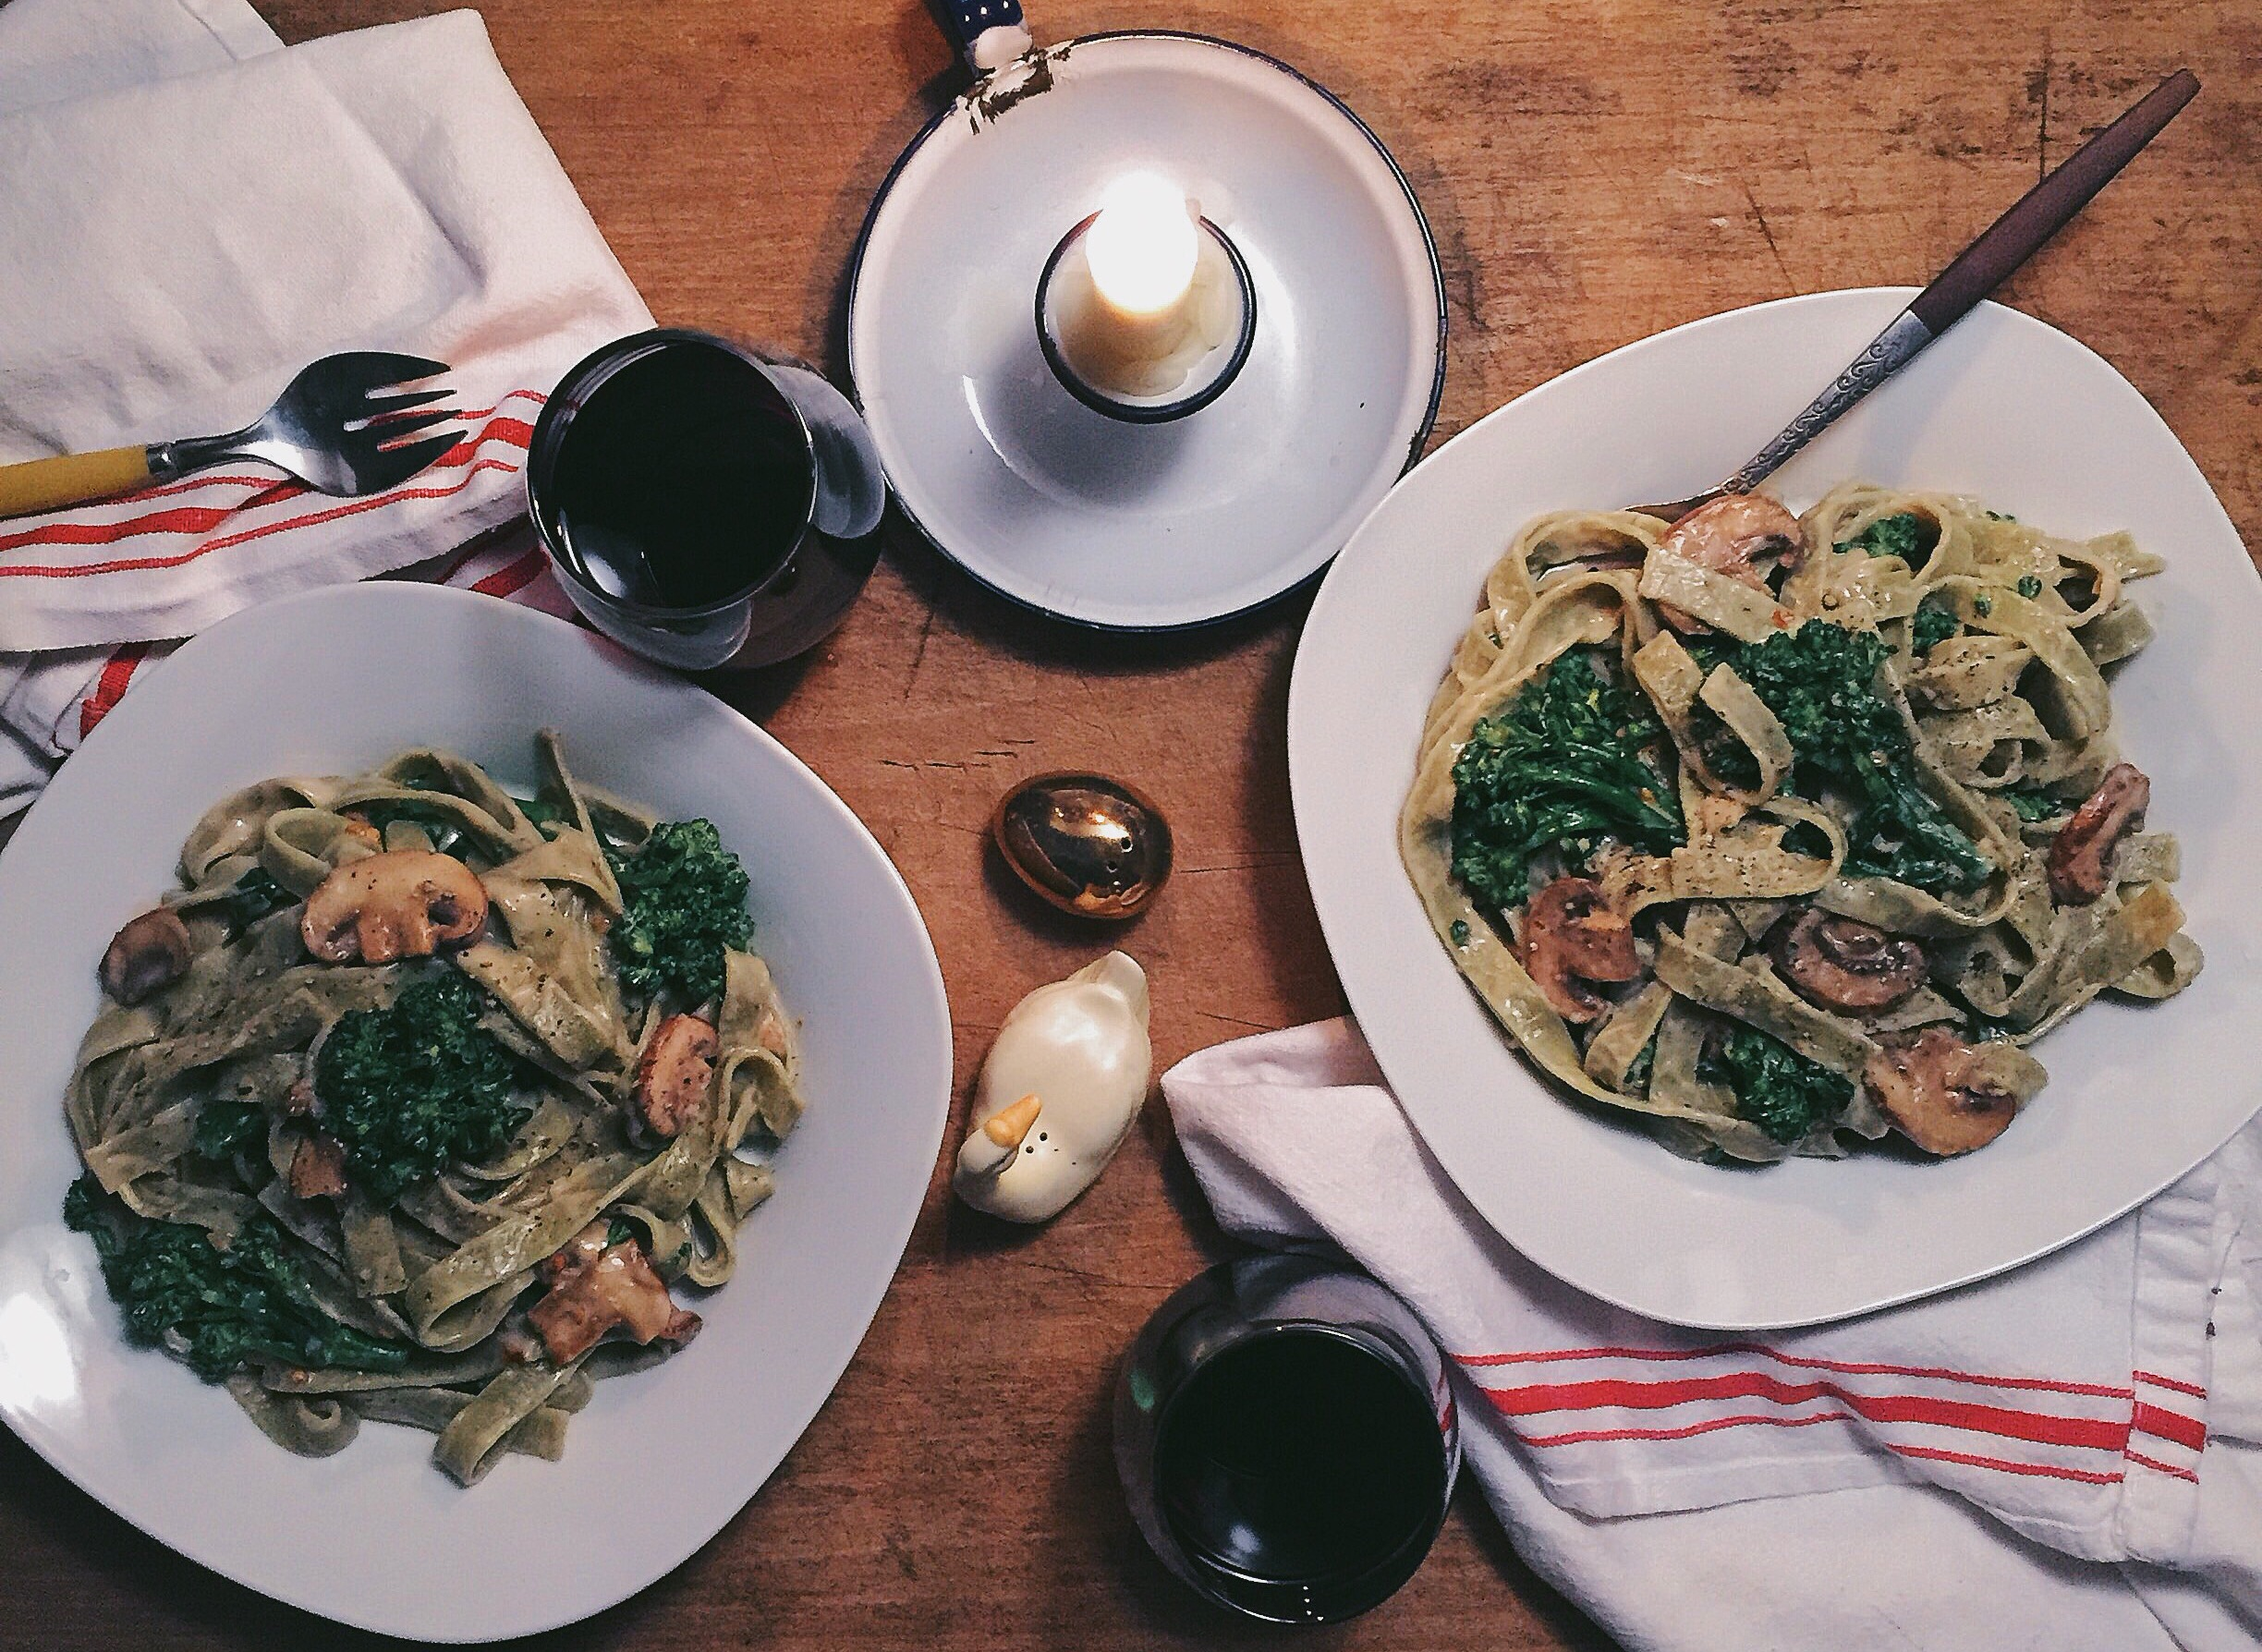 The Perfect Pasta Dinner Kit - Cooking and Photography by Elliott Shaffner and Fred Turko